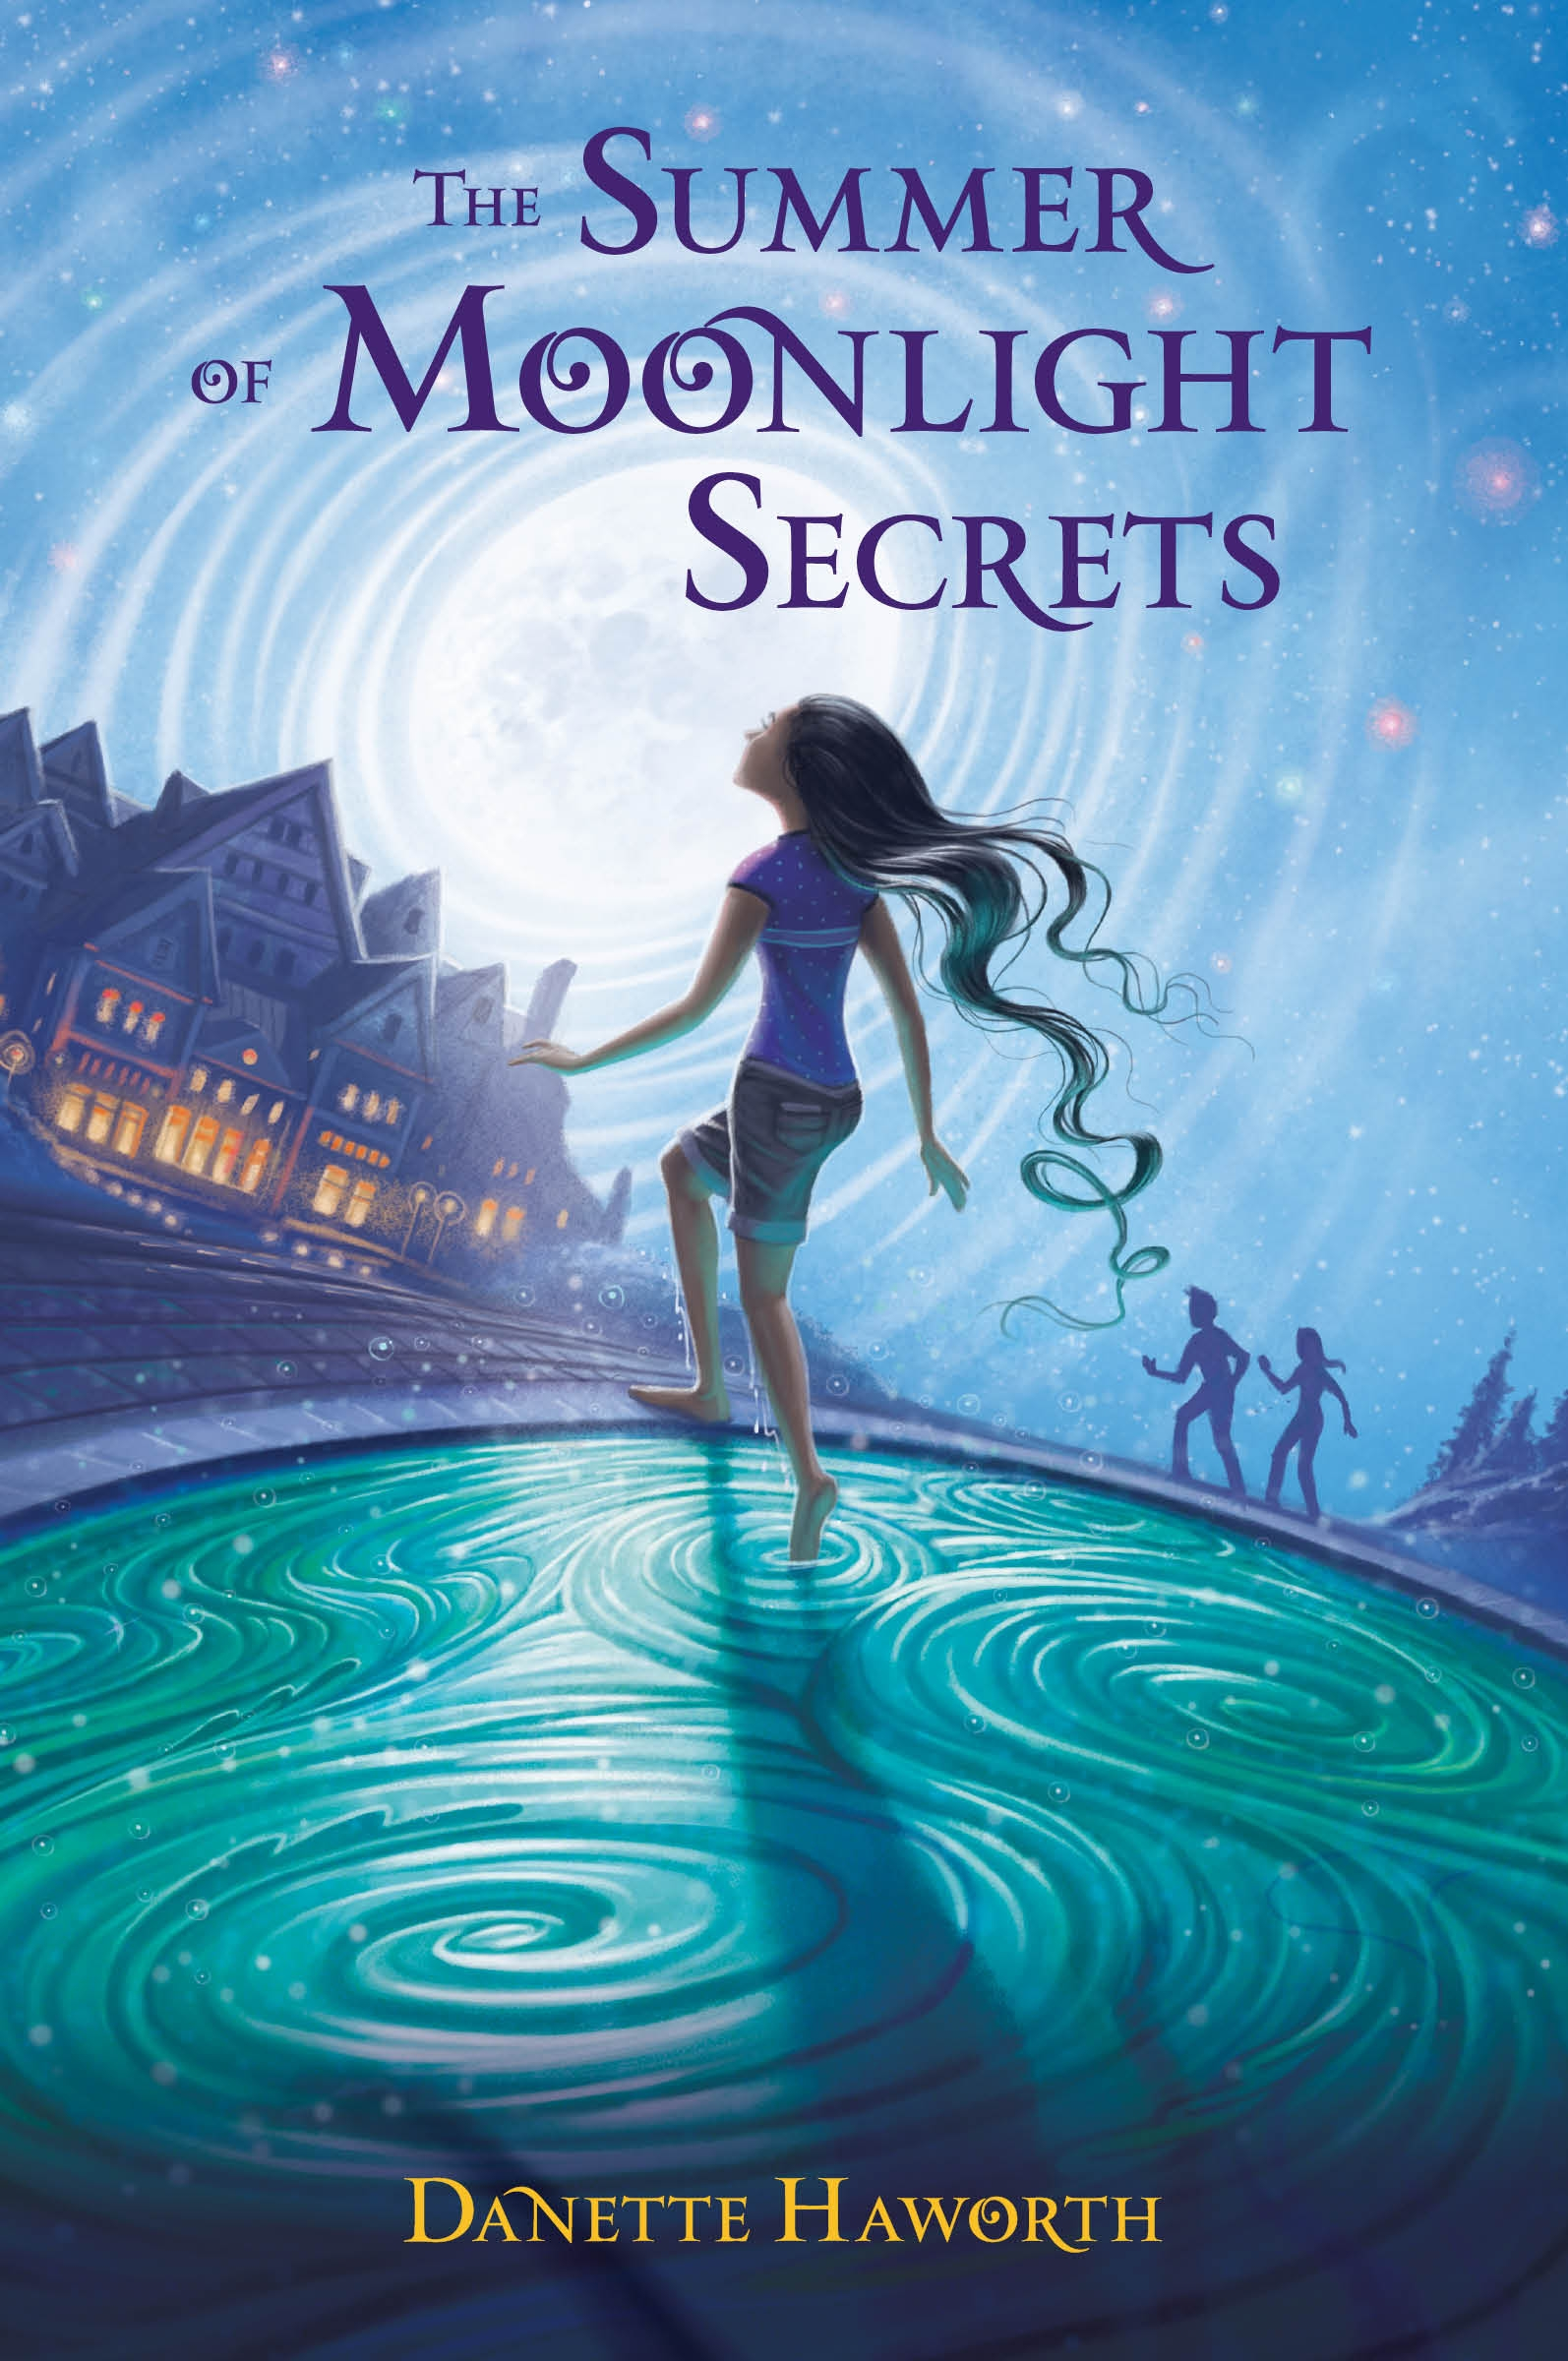 And the Winner of The Summer of Moonlight Secrets is . . .